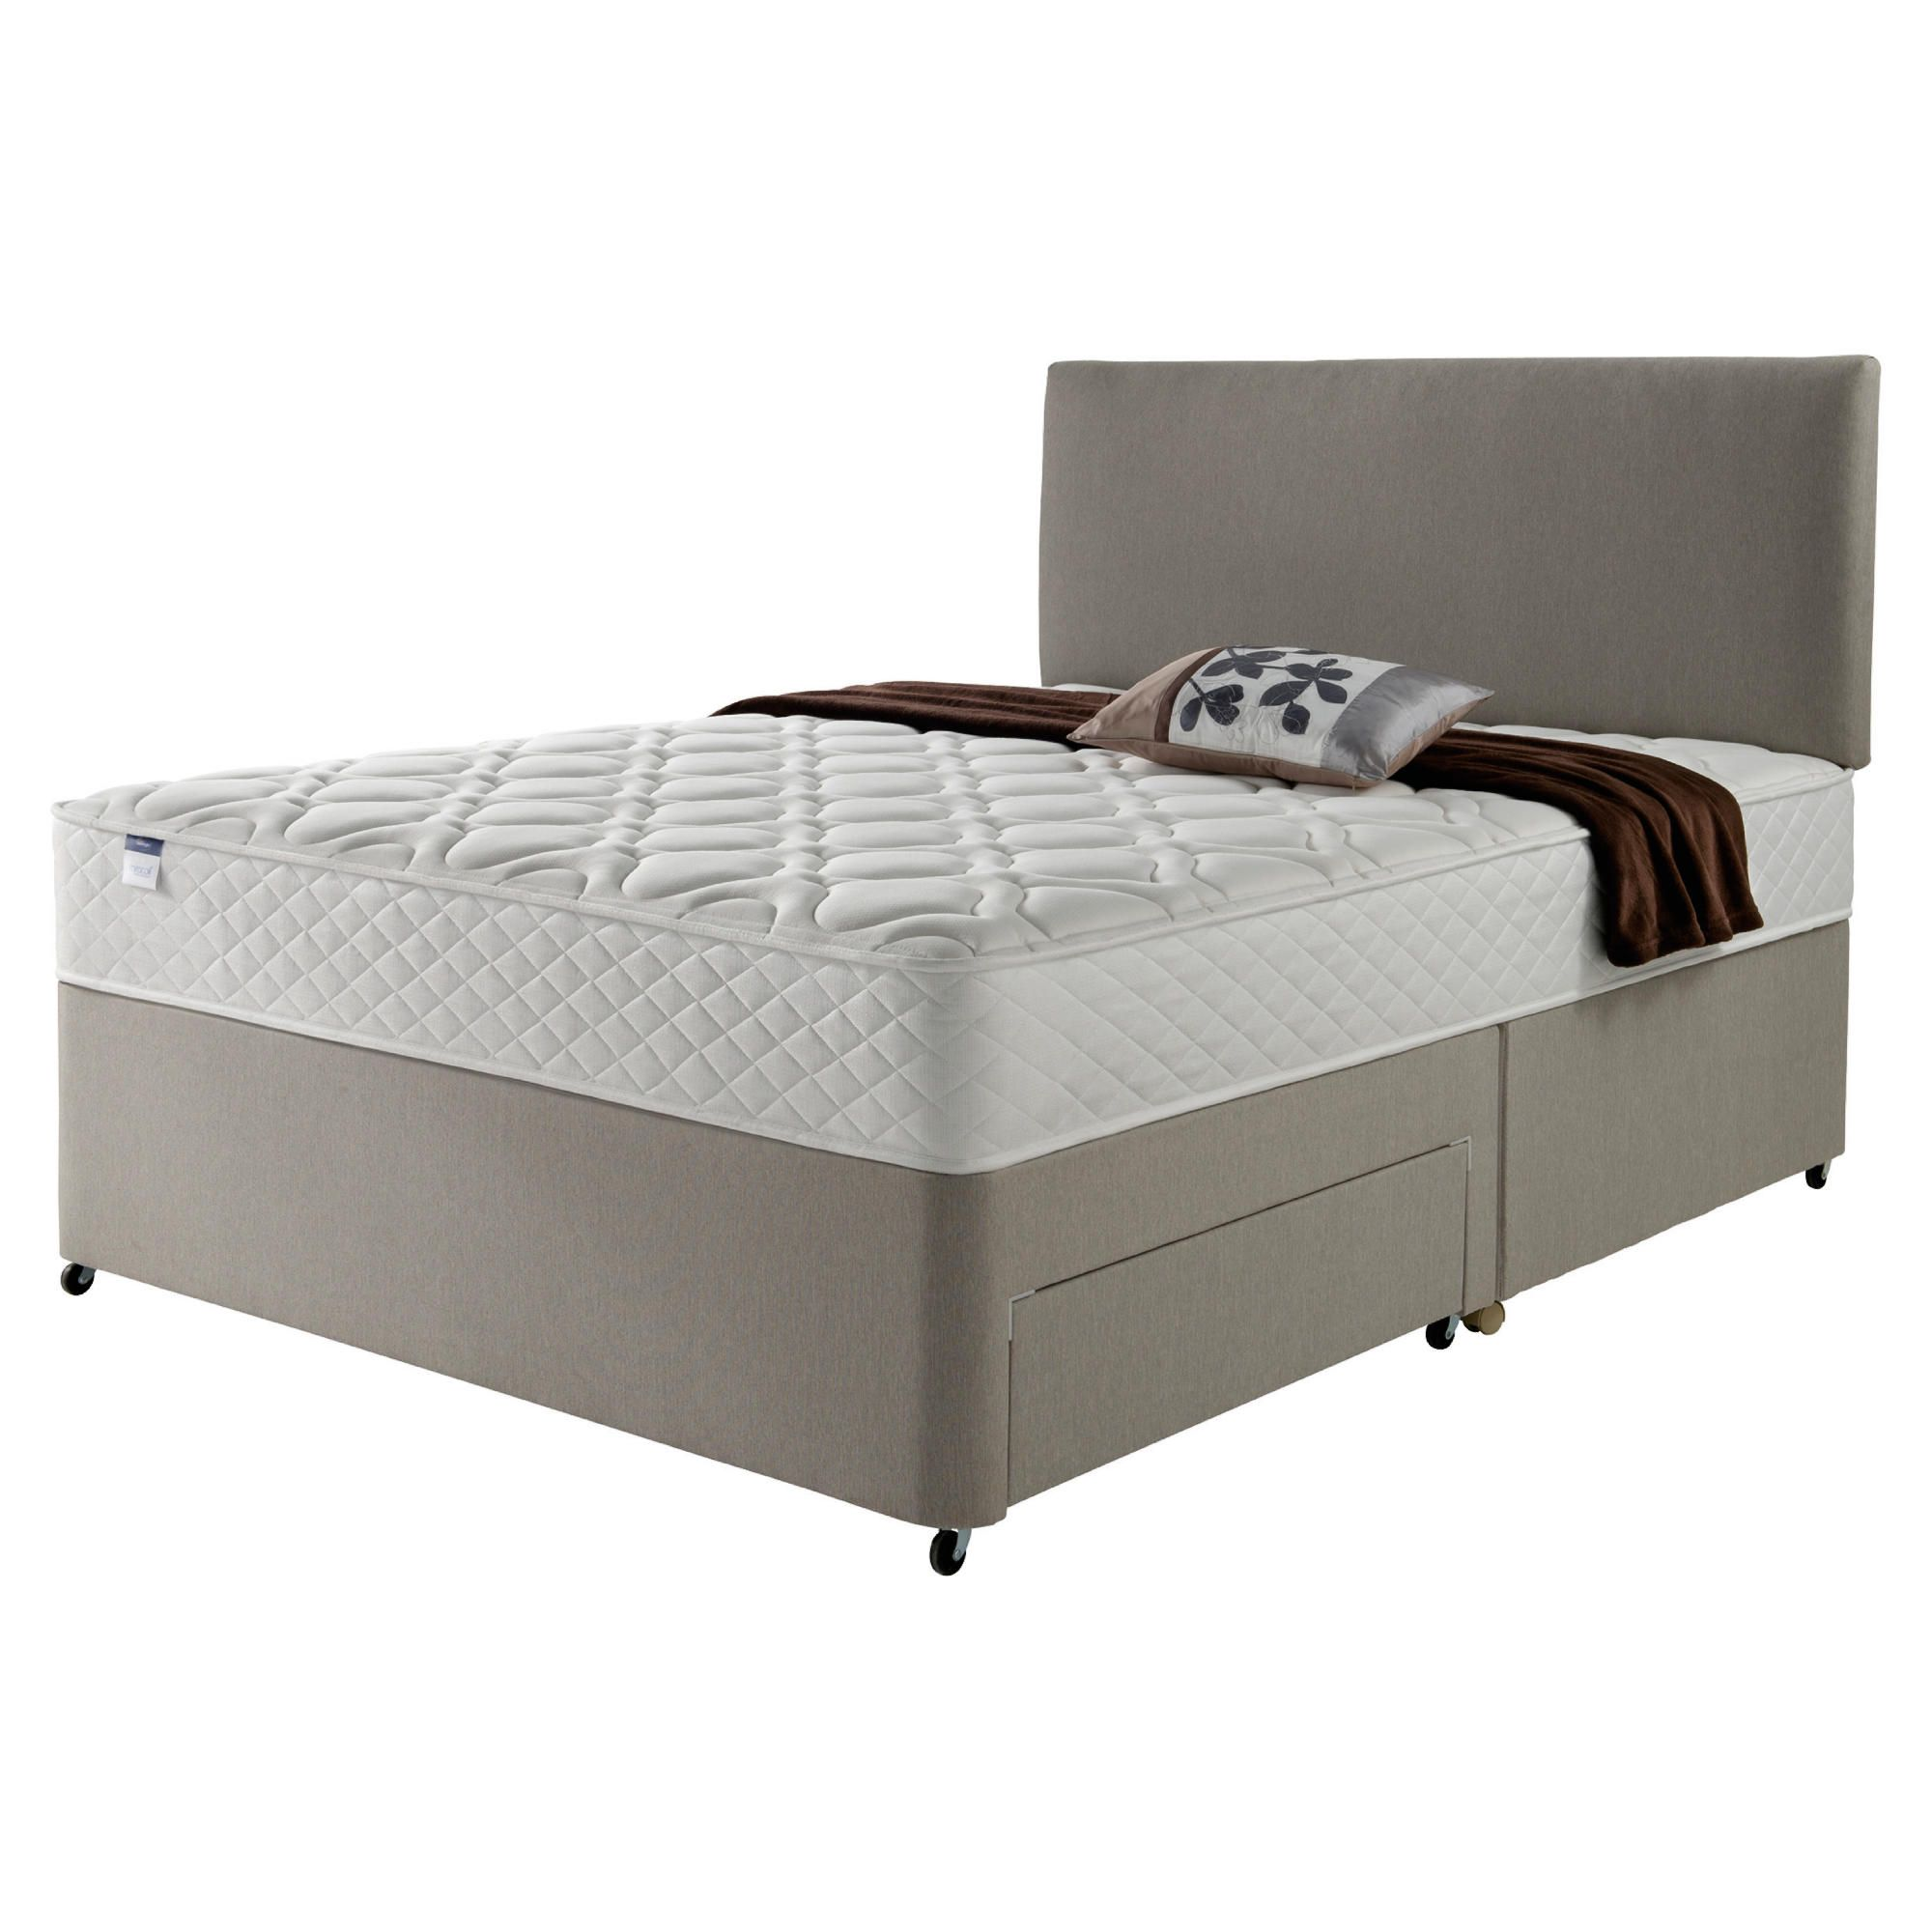 Silentnight Miracoil Luxury Micro Quilt Non Storage Super King Divan Mink with Headboard at Tesco Direct